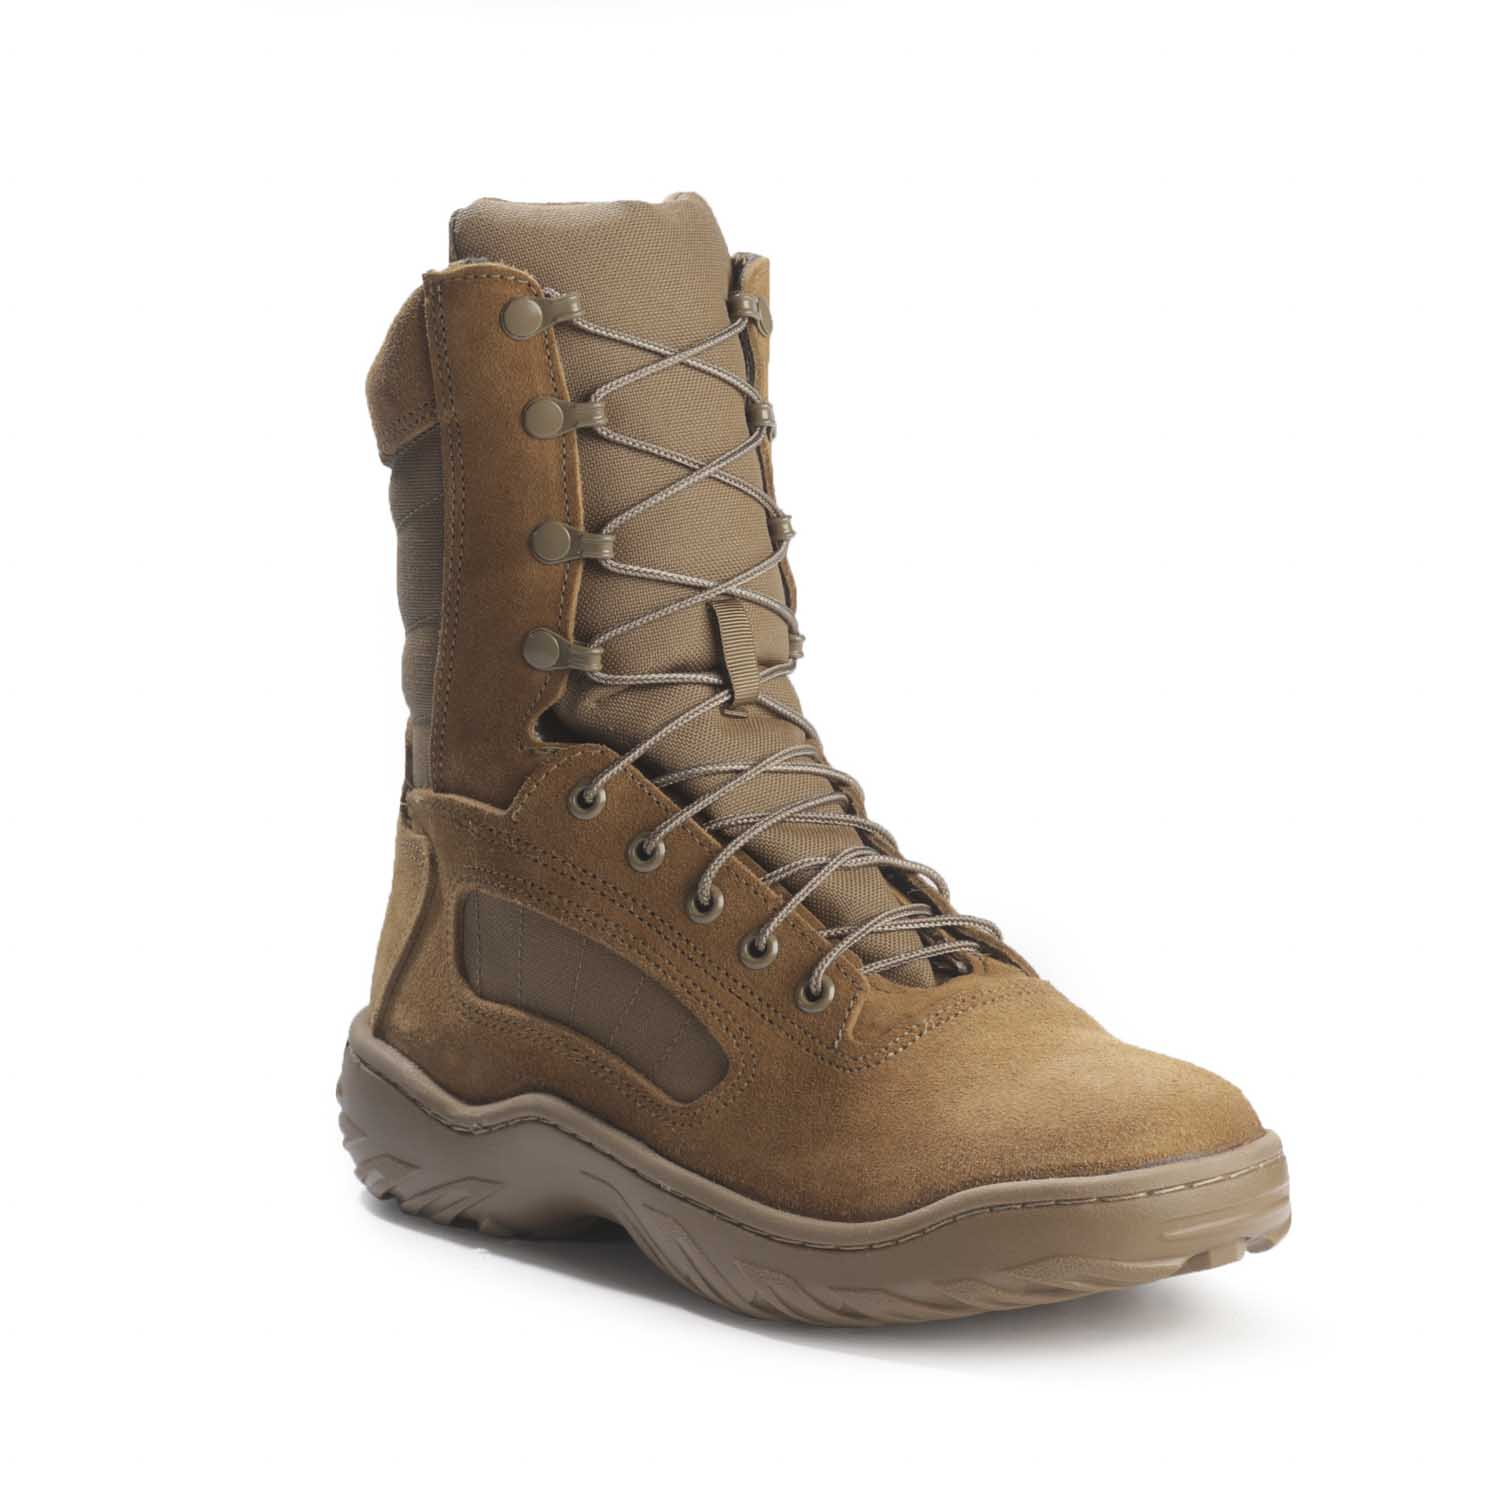 "Reebok Fusion Max 8"" Tactical Boot (Coyote Brown)"